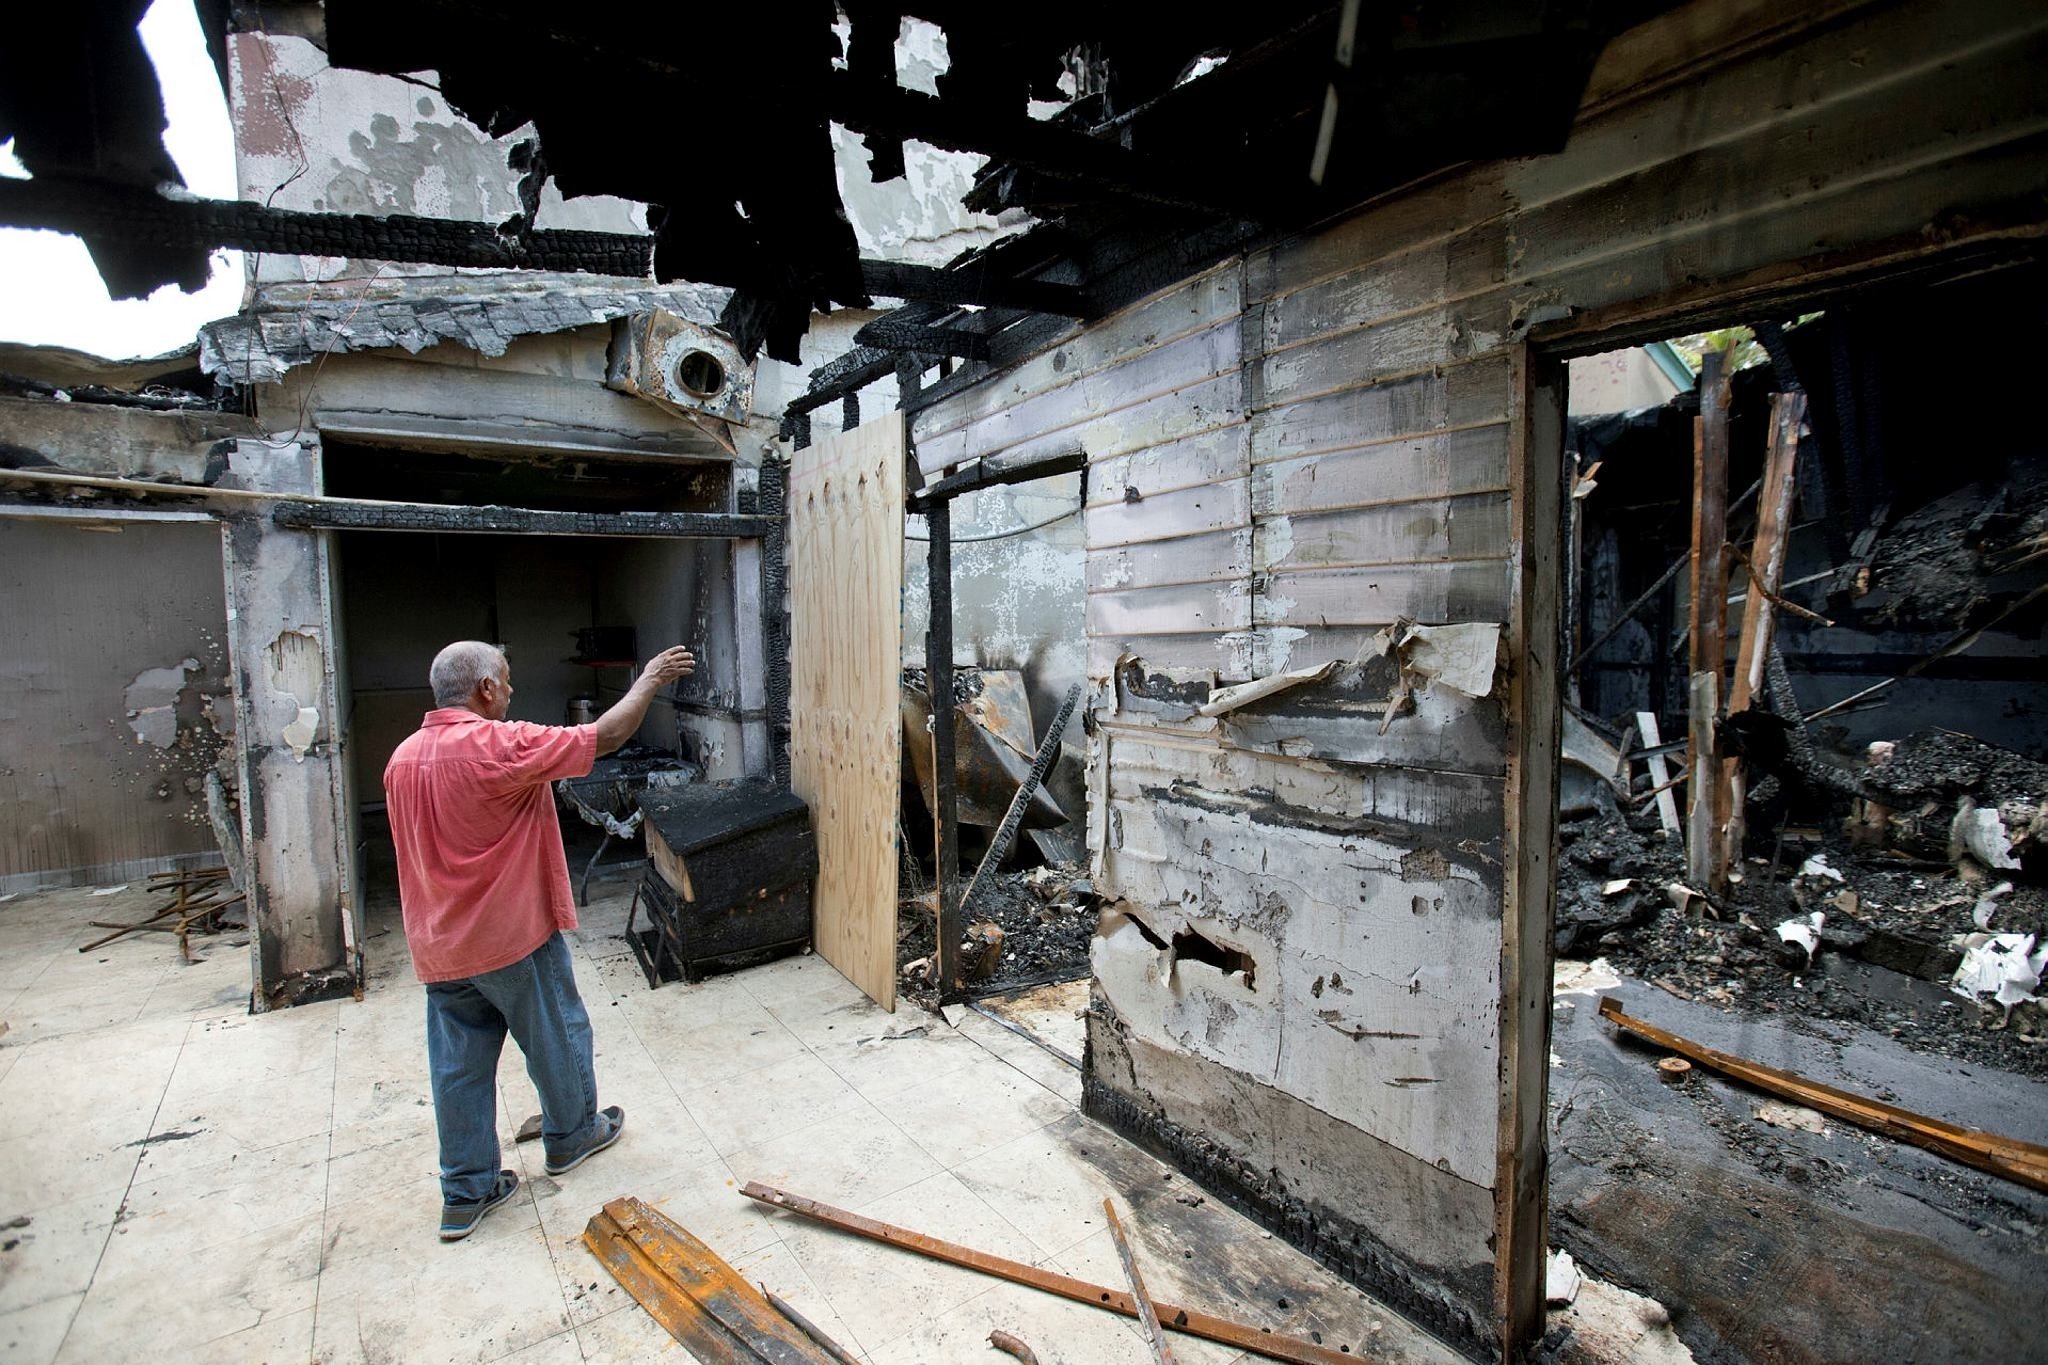 Farhad Khan, who has attended the Islamic Center of FortPierce for more than seven years, shows members of the media its charred remains, in Fort Pierce, Fla. (AP Photo)